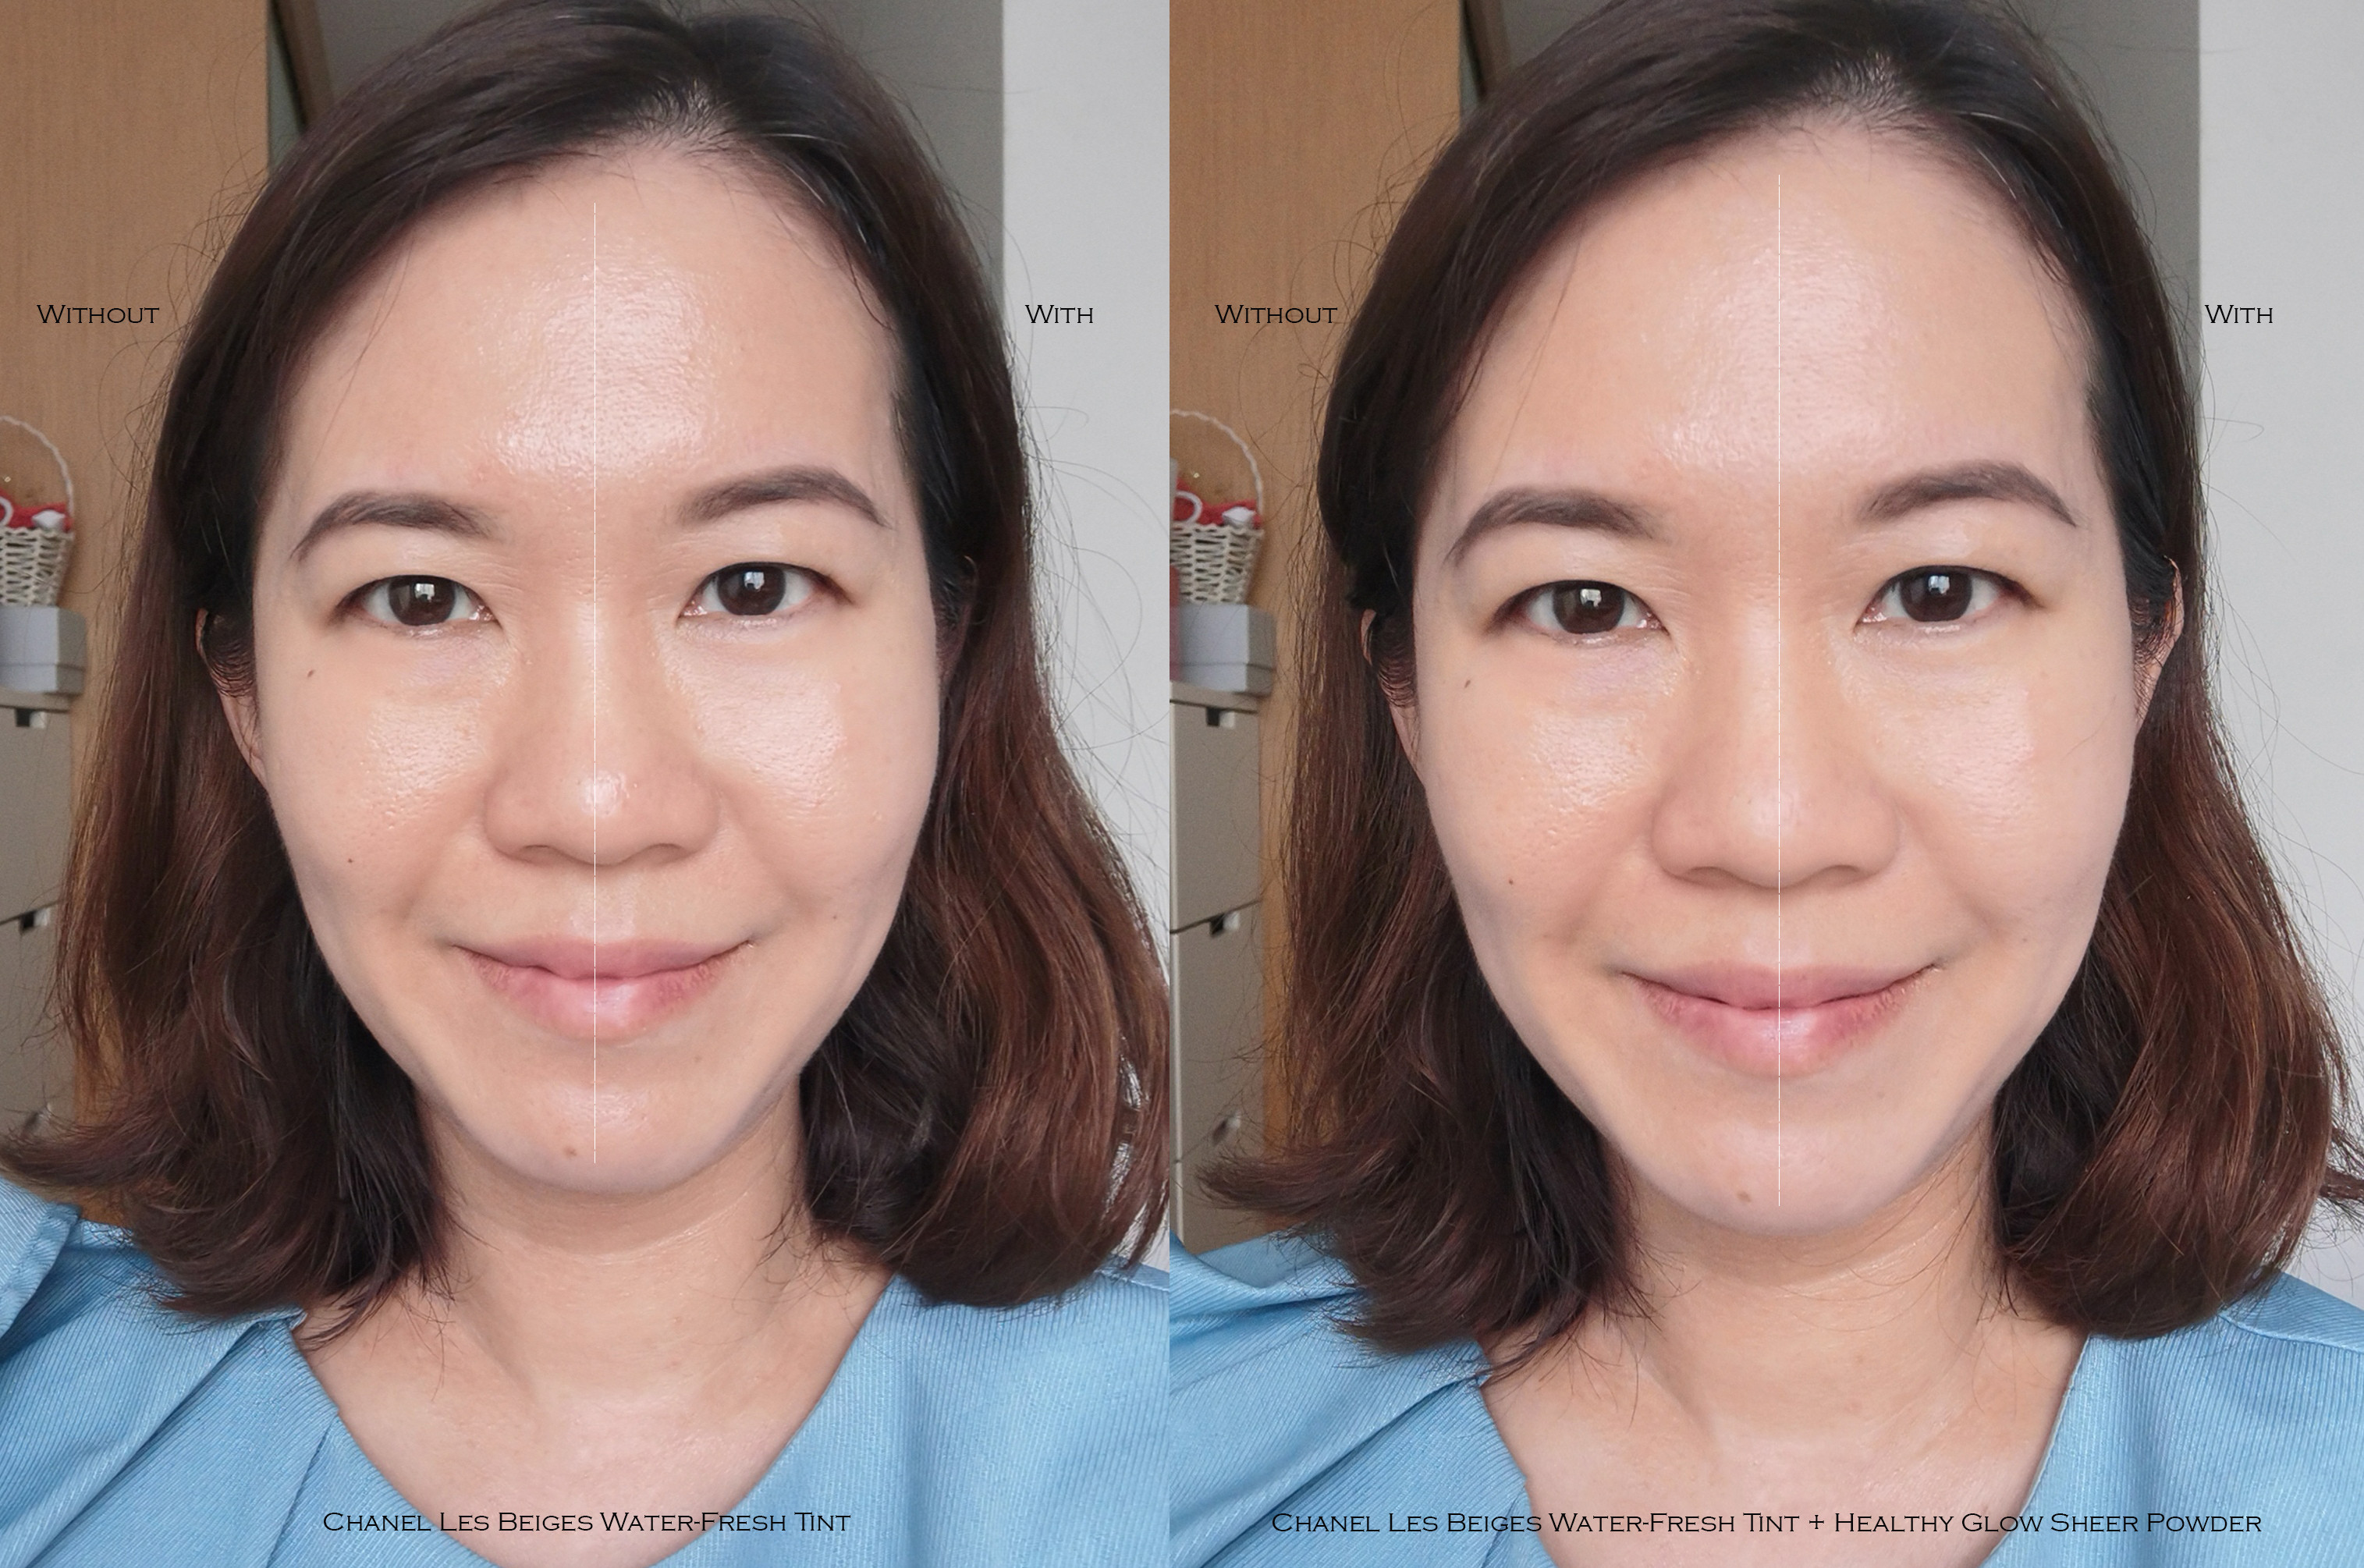 Chanel Les Beiges Water Fresh Tint & Healthy Glow Sheer Powder before after